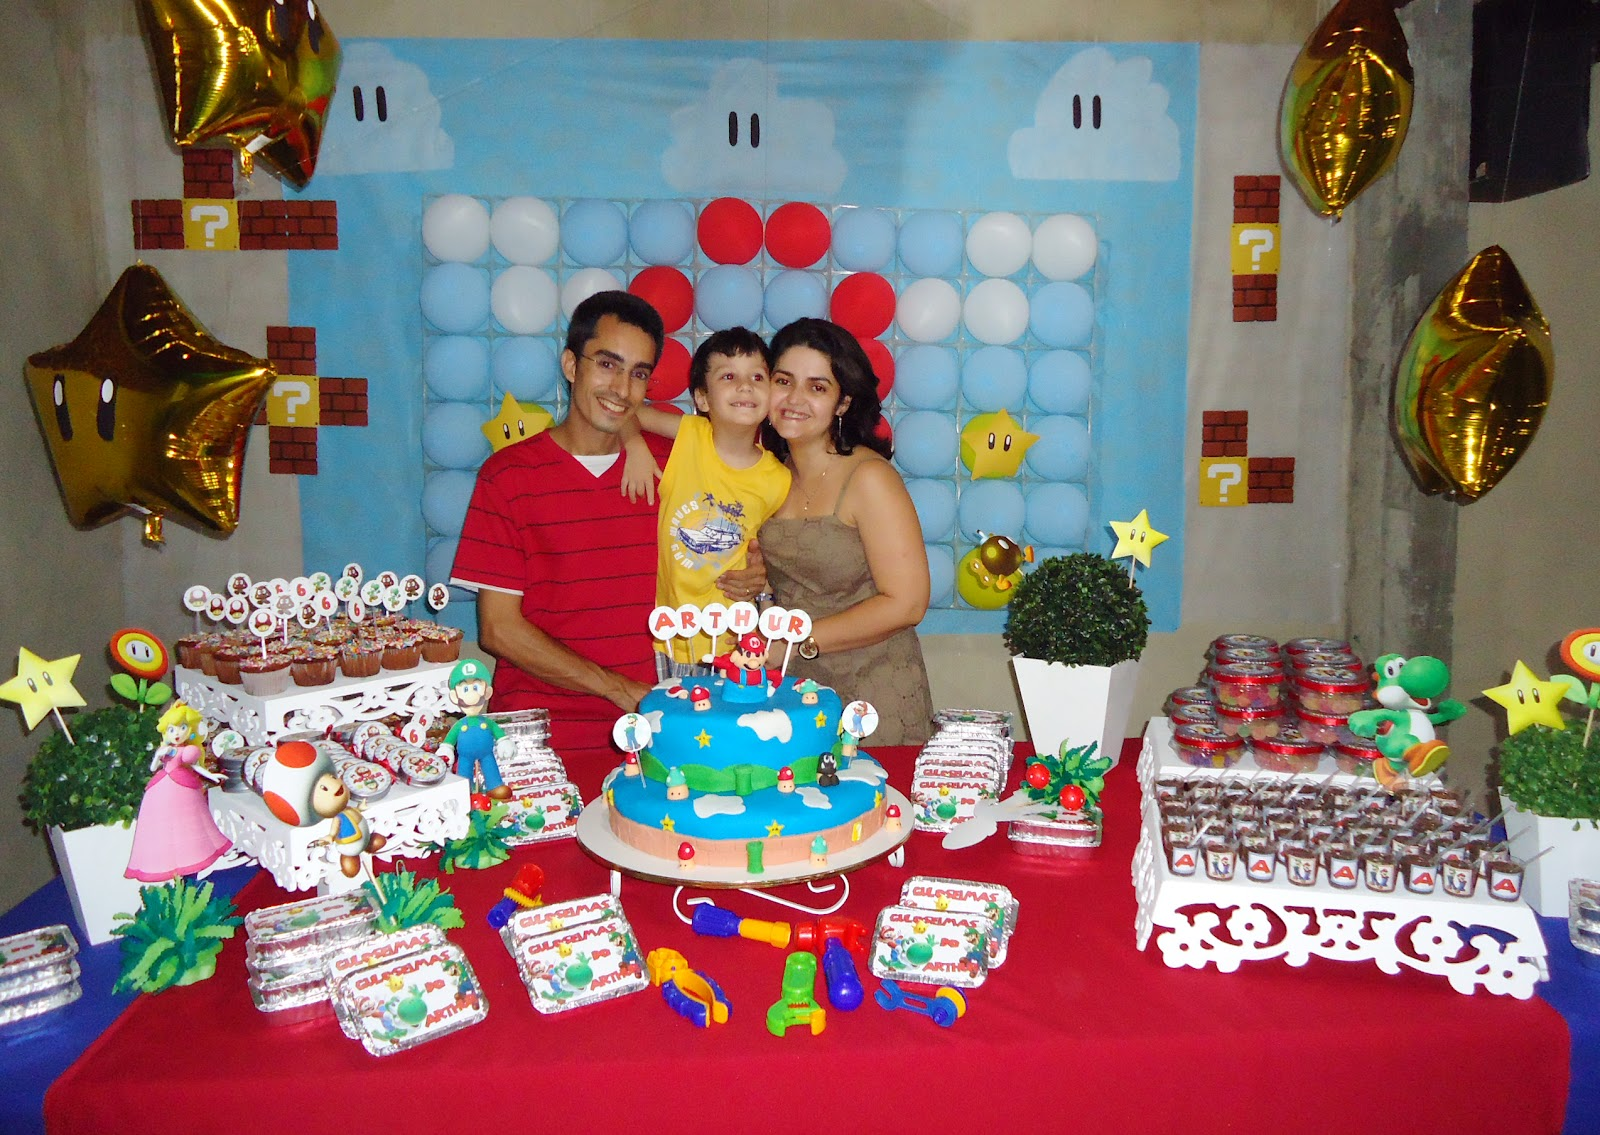 Reinado de Arthur A festa do Super Mario Bros